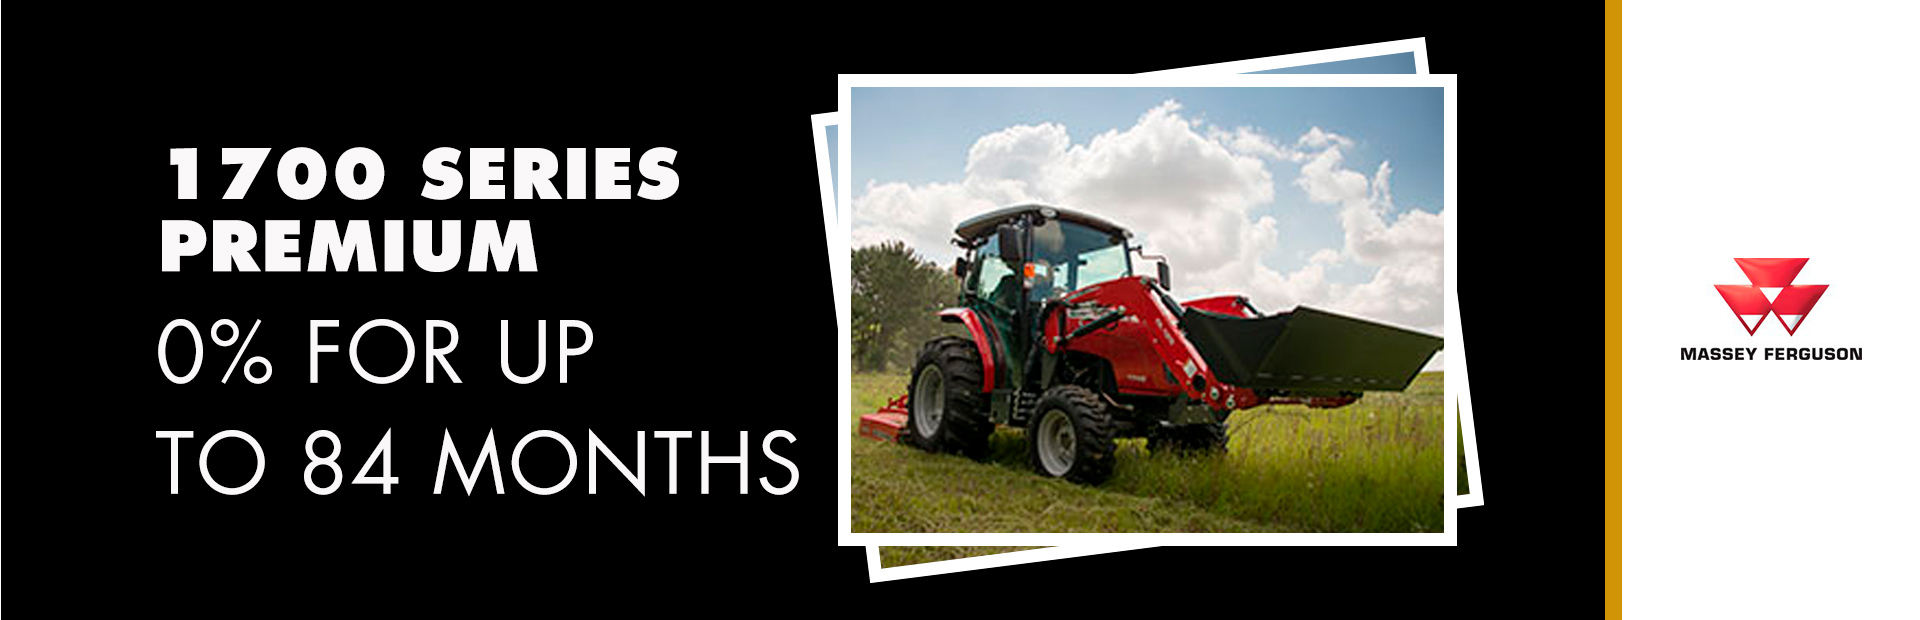 Massey Ferguson: 1700 Series Premium - 0% for up to 84 Months